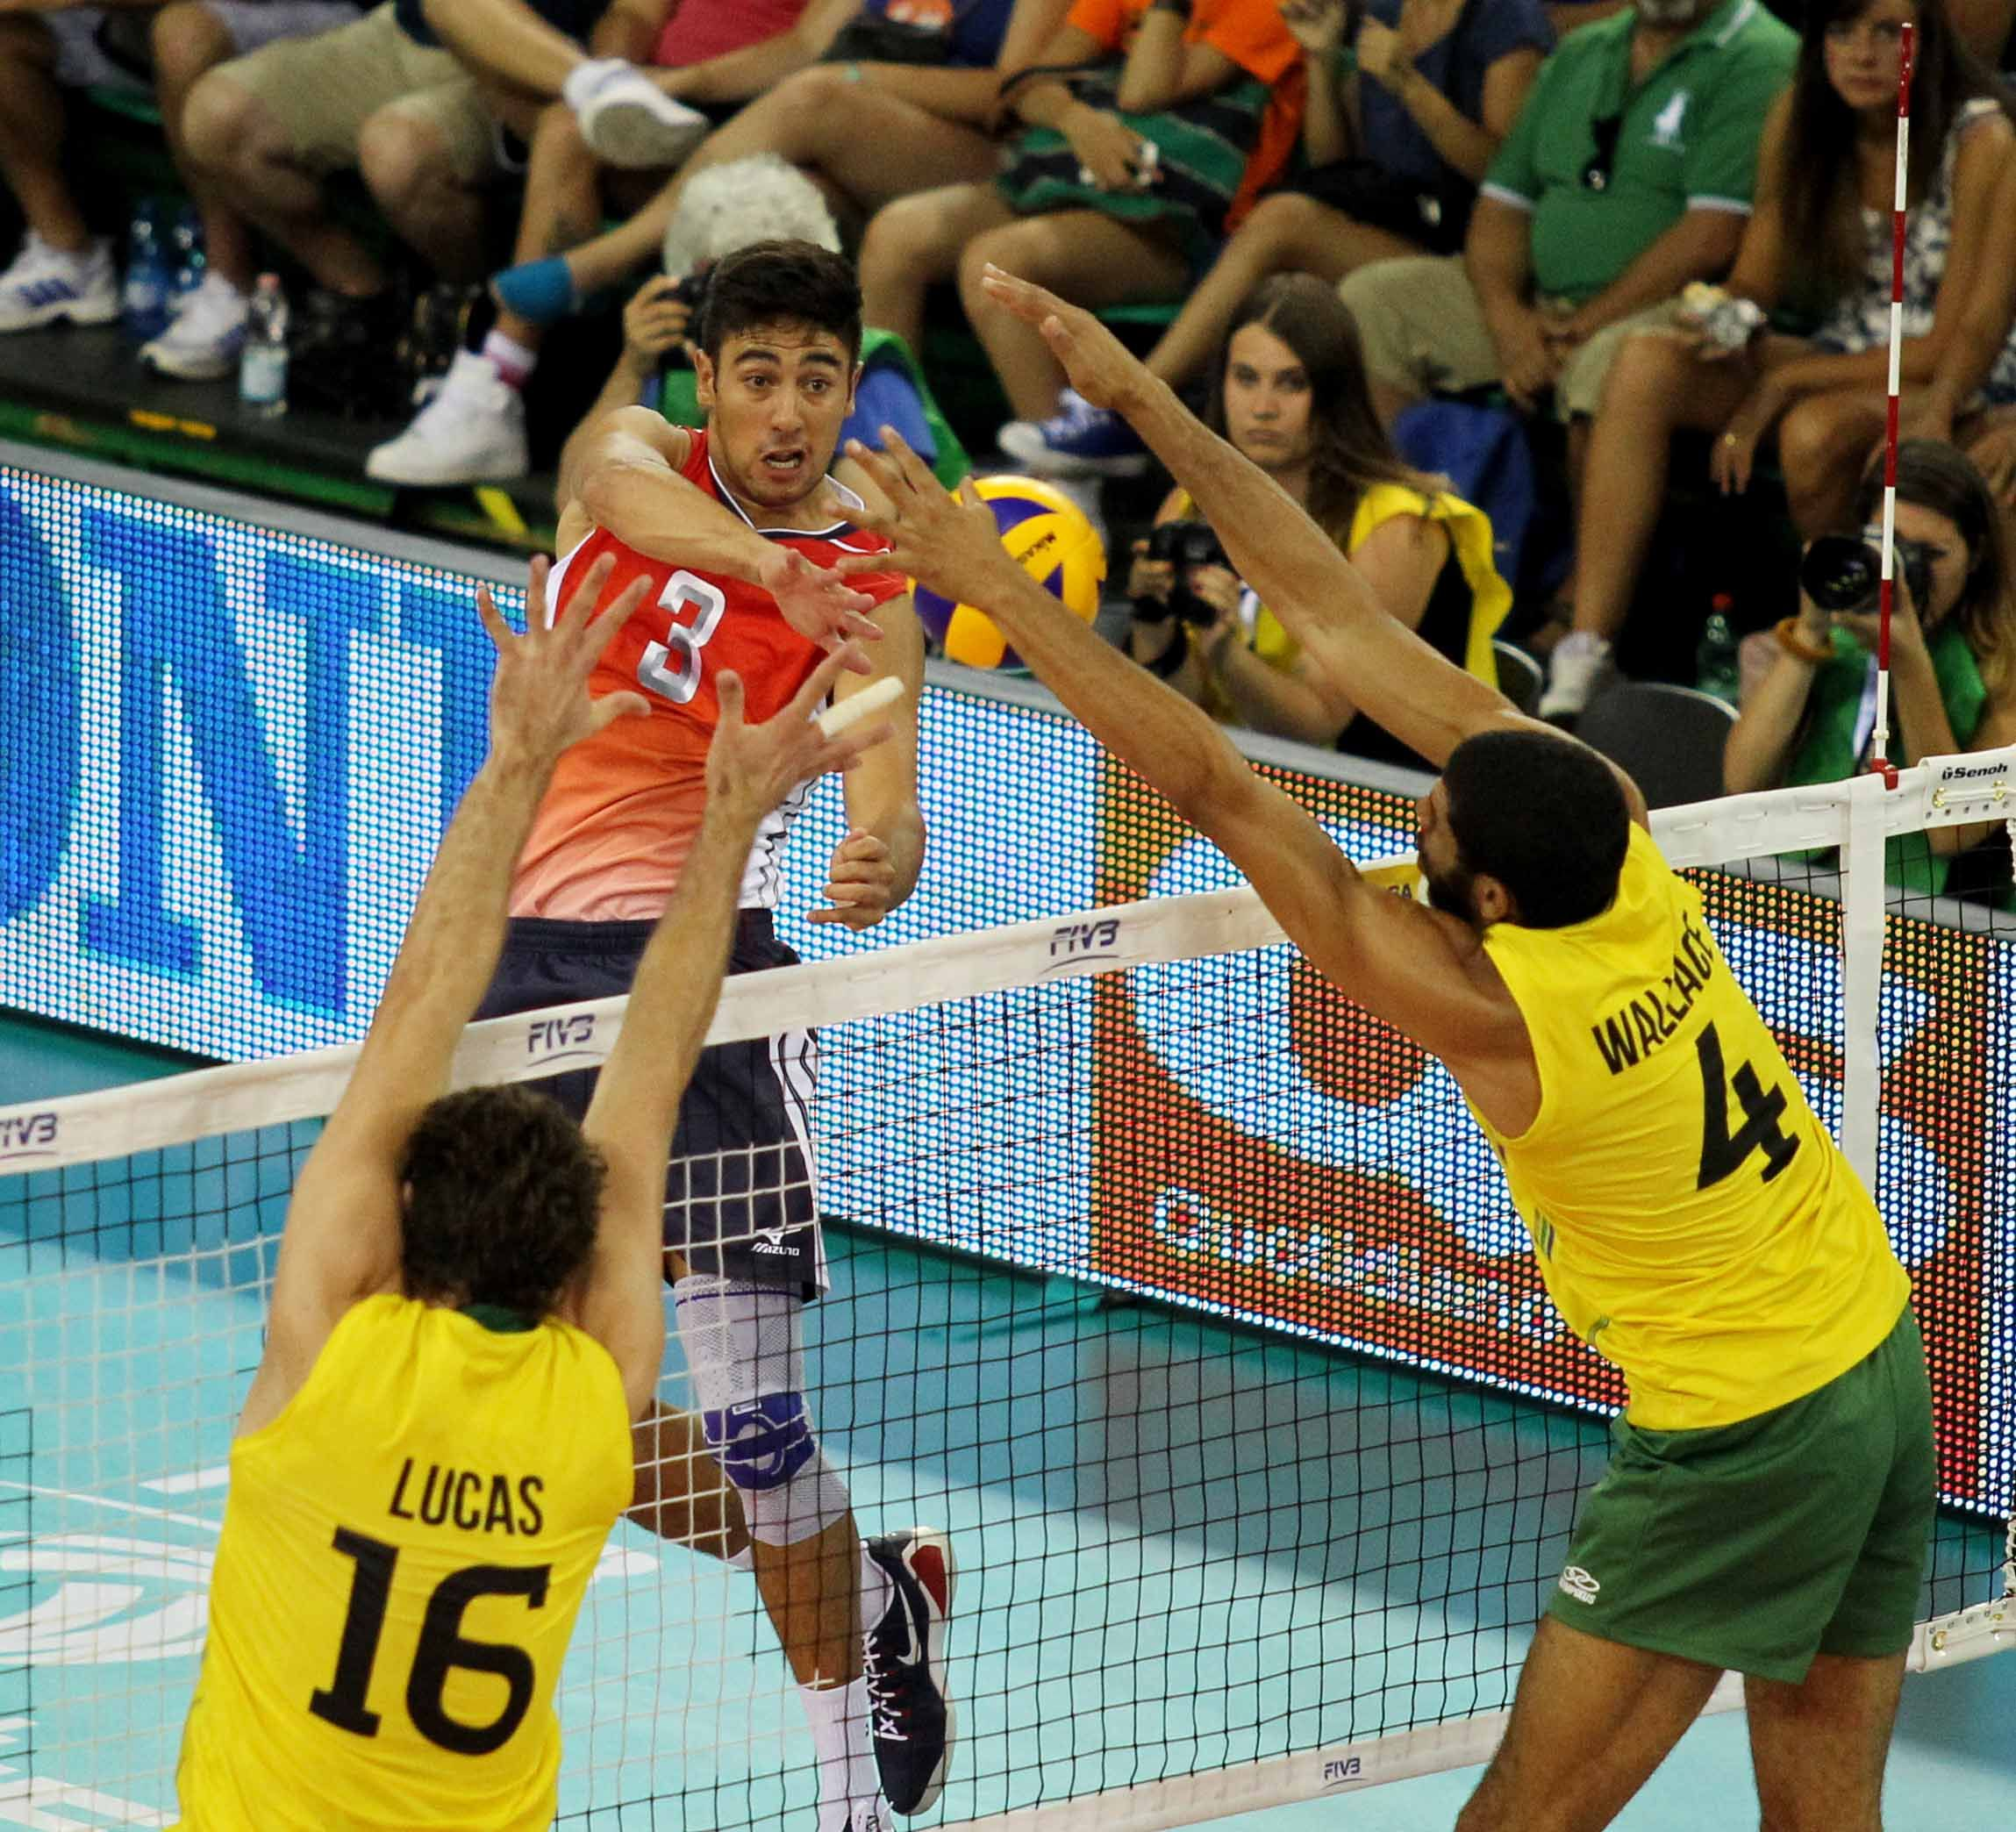 Taylor Sander Usa Mens Volleyball Team Games Volleyball